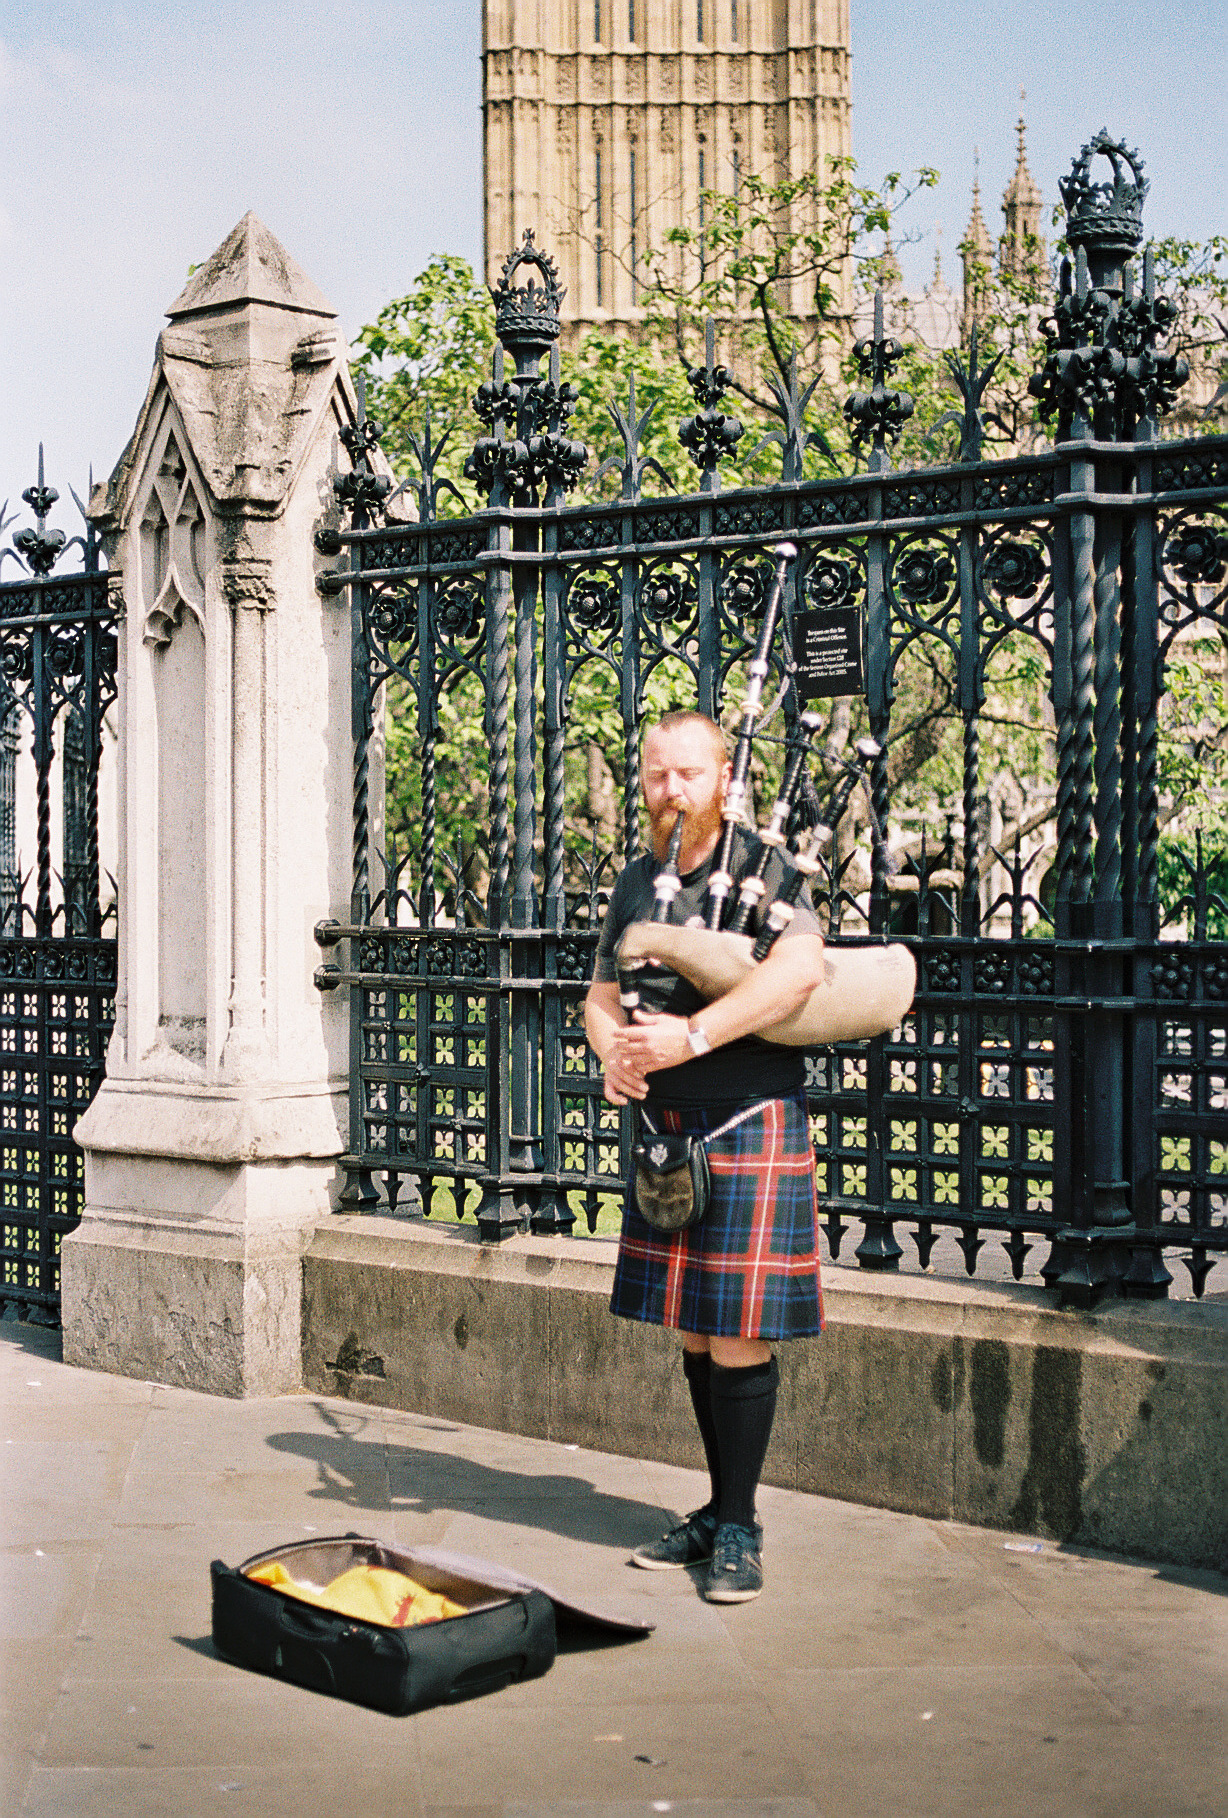 bagpipes-player-london-uk-big-ben-westminster-abbey-european-honeymoon